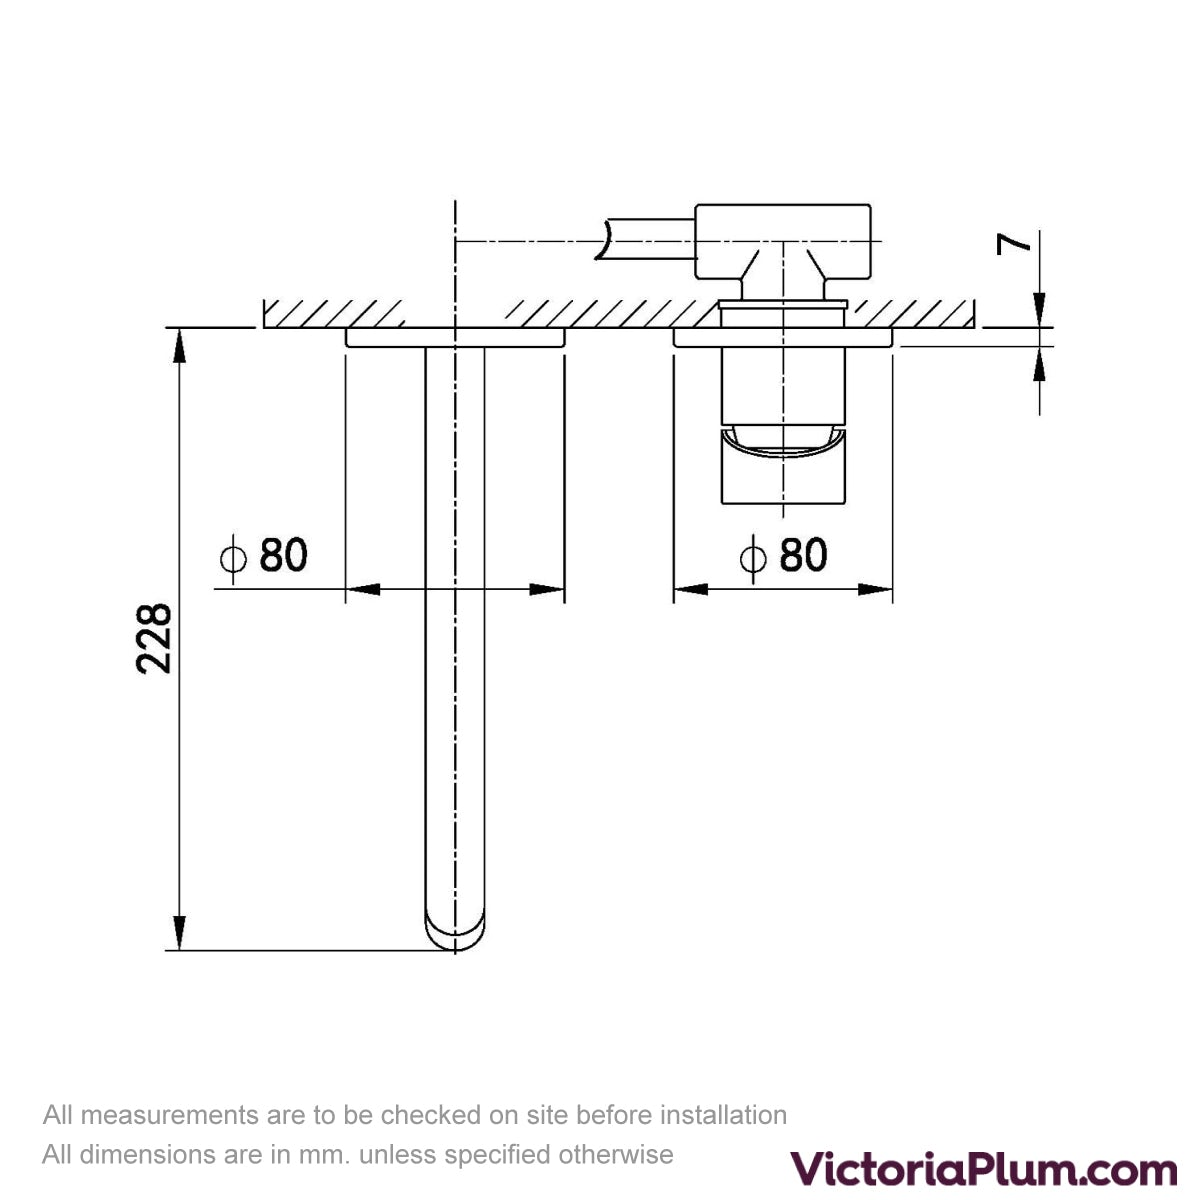 Dimensions for Mode Spencer round wall mounted rose gold bath mixer tap